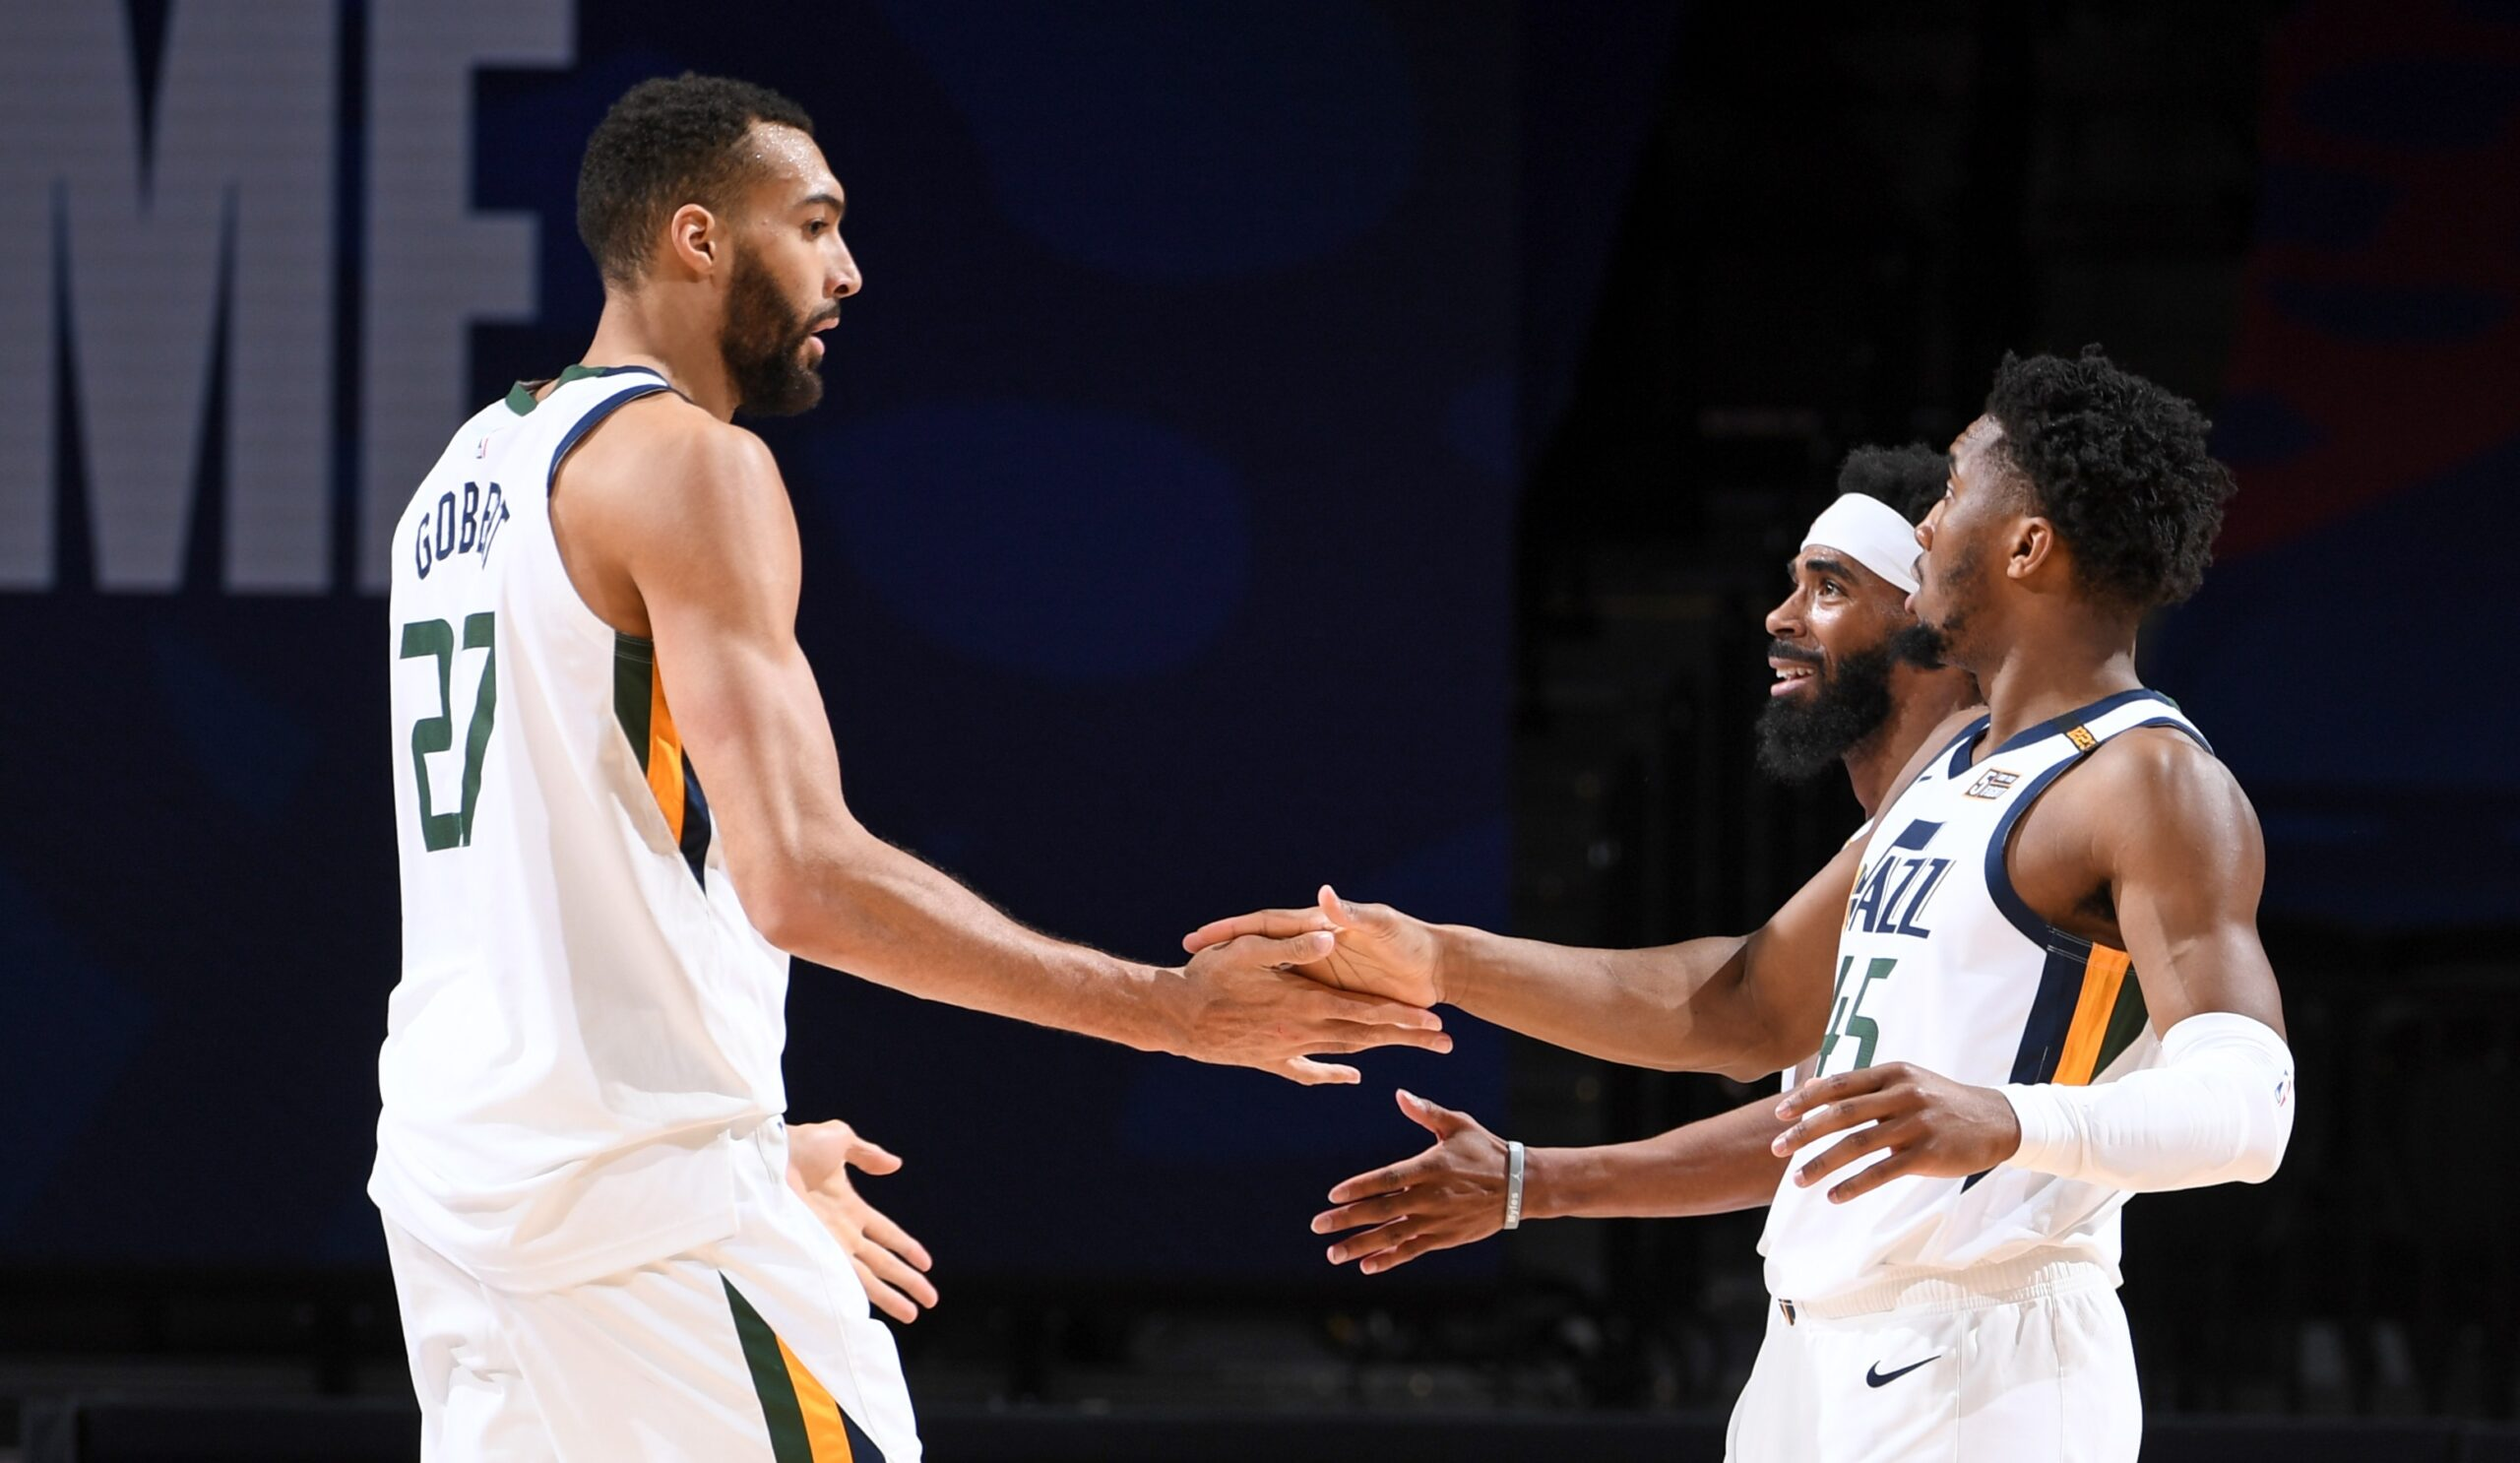 Jazz pit league's best record against struggling Kings